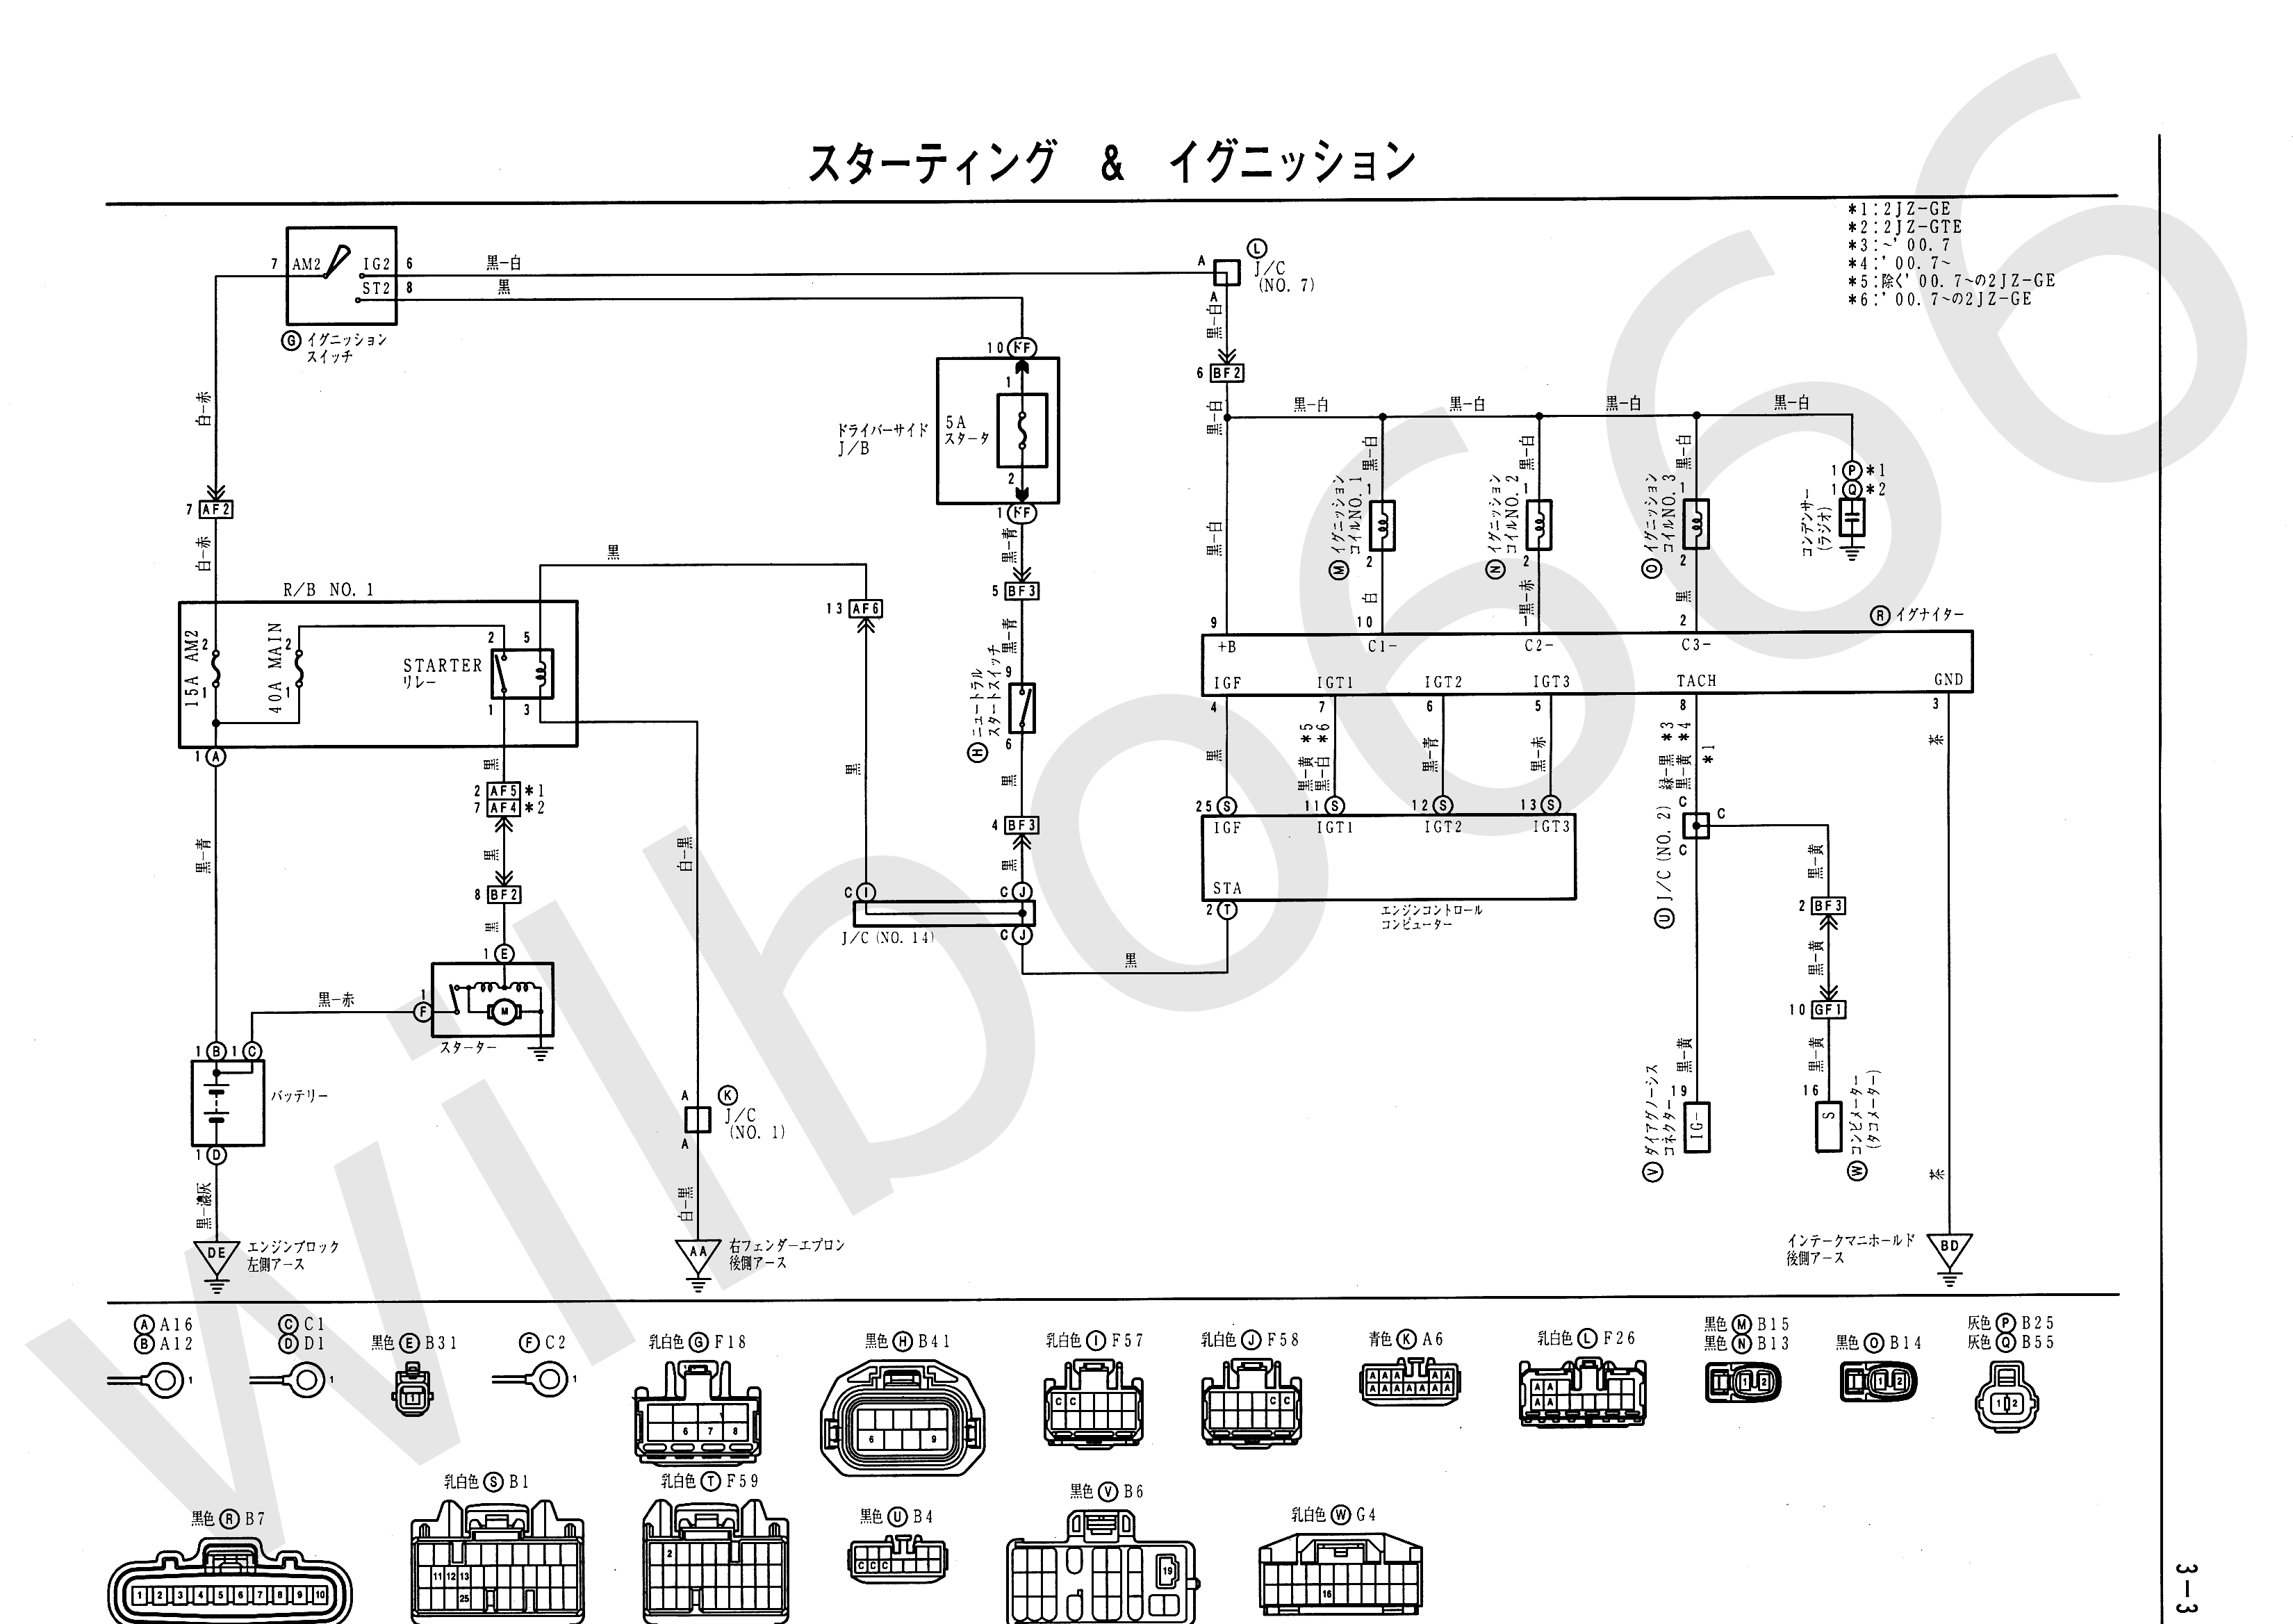 2jz gte wiring diagram wiring diagram for you all u2022 rh onlinetuner co